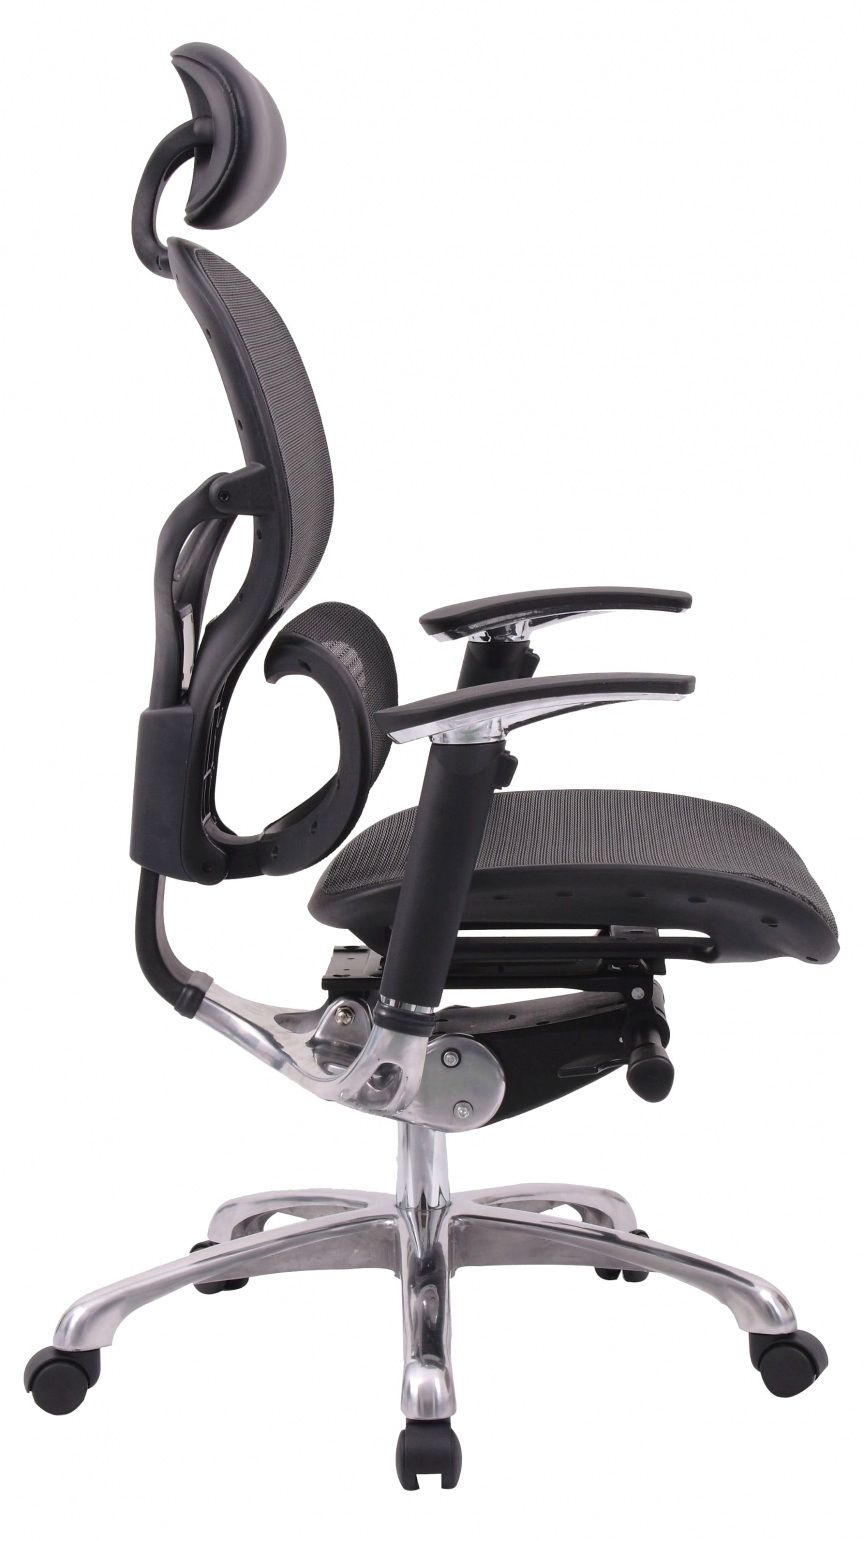 55+ Best Office Chair for Lower Back Cool Rustic